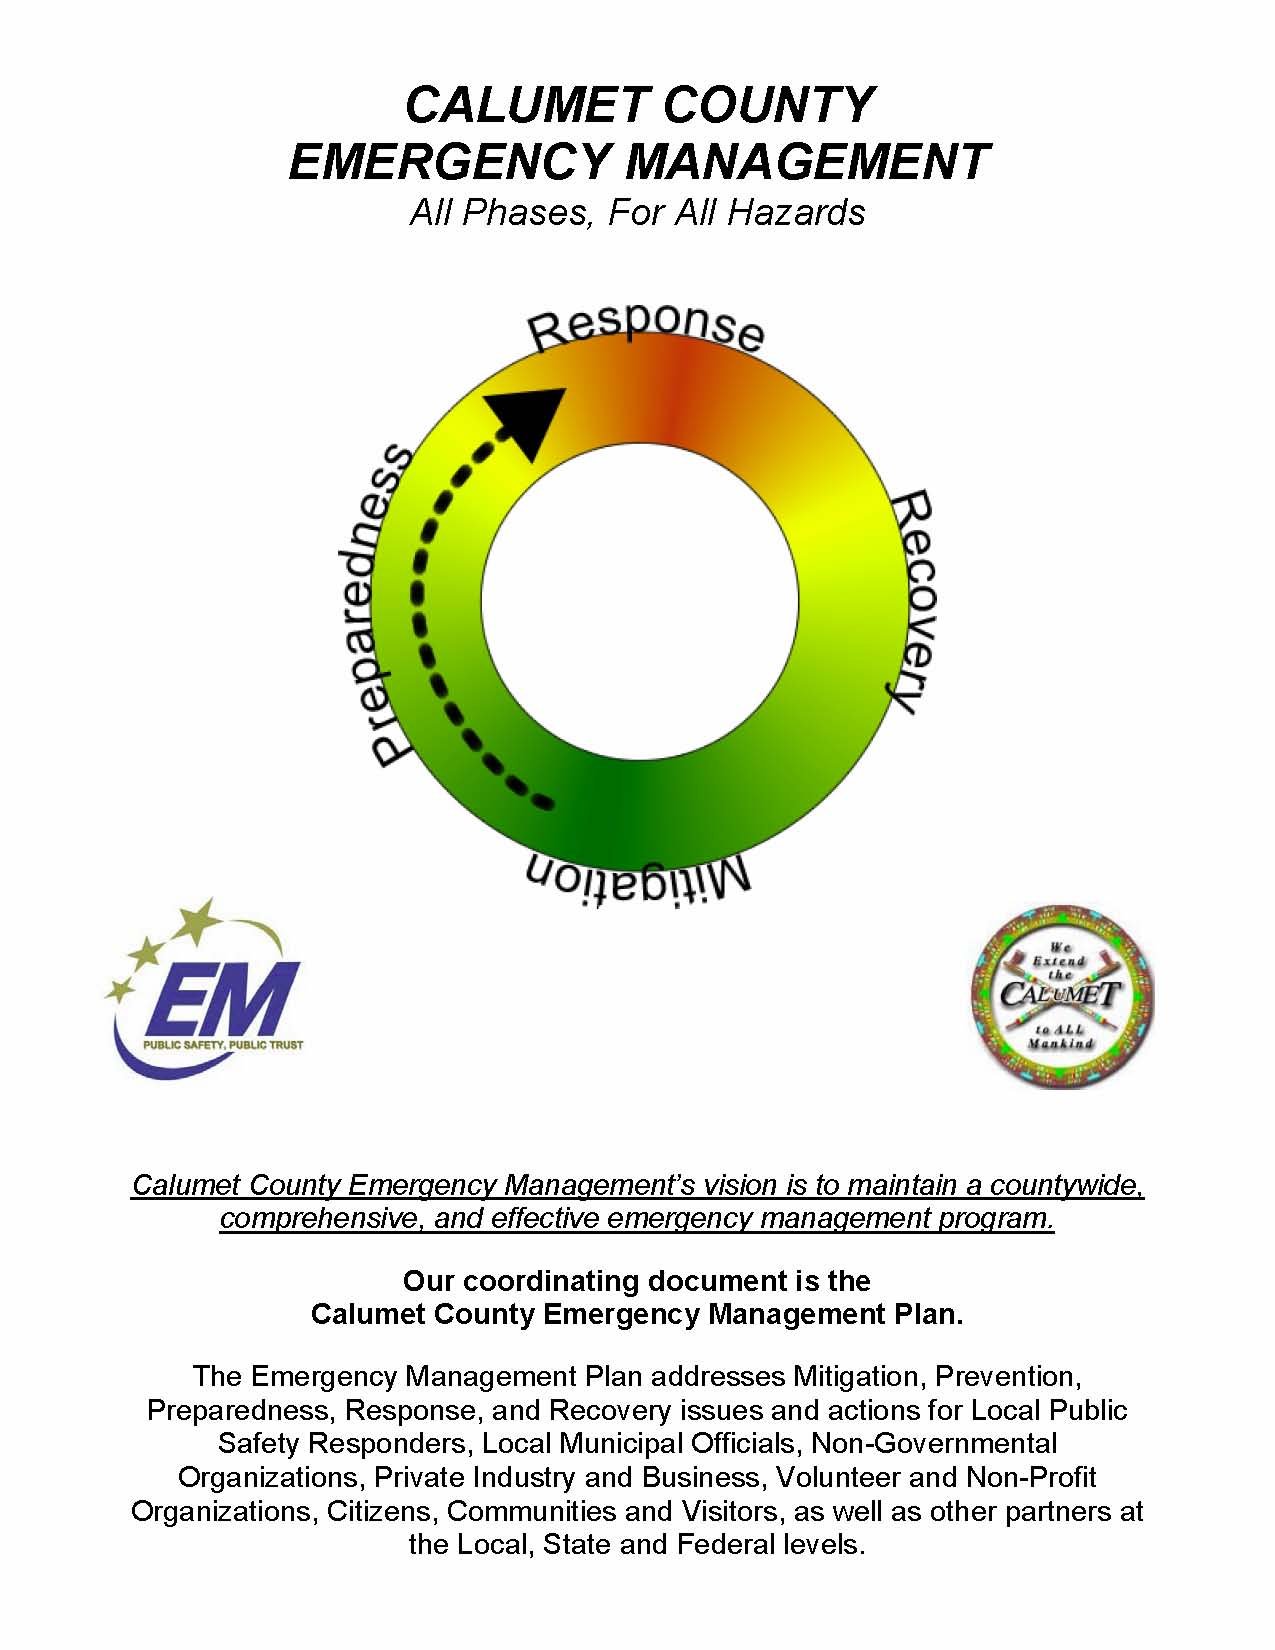 EMERGENCY MANAGEMENT 2010-06-14 color.jpg